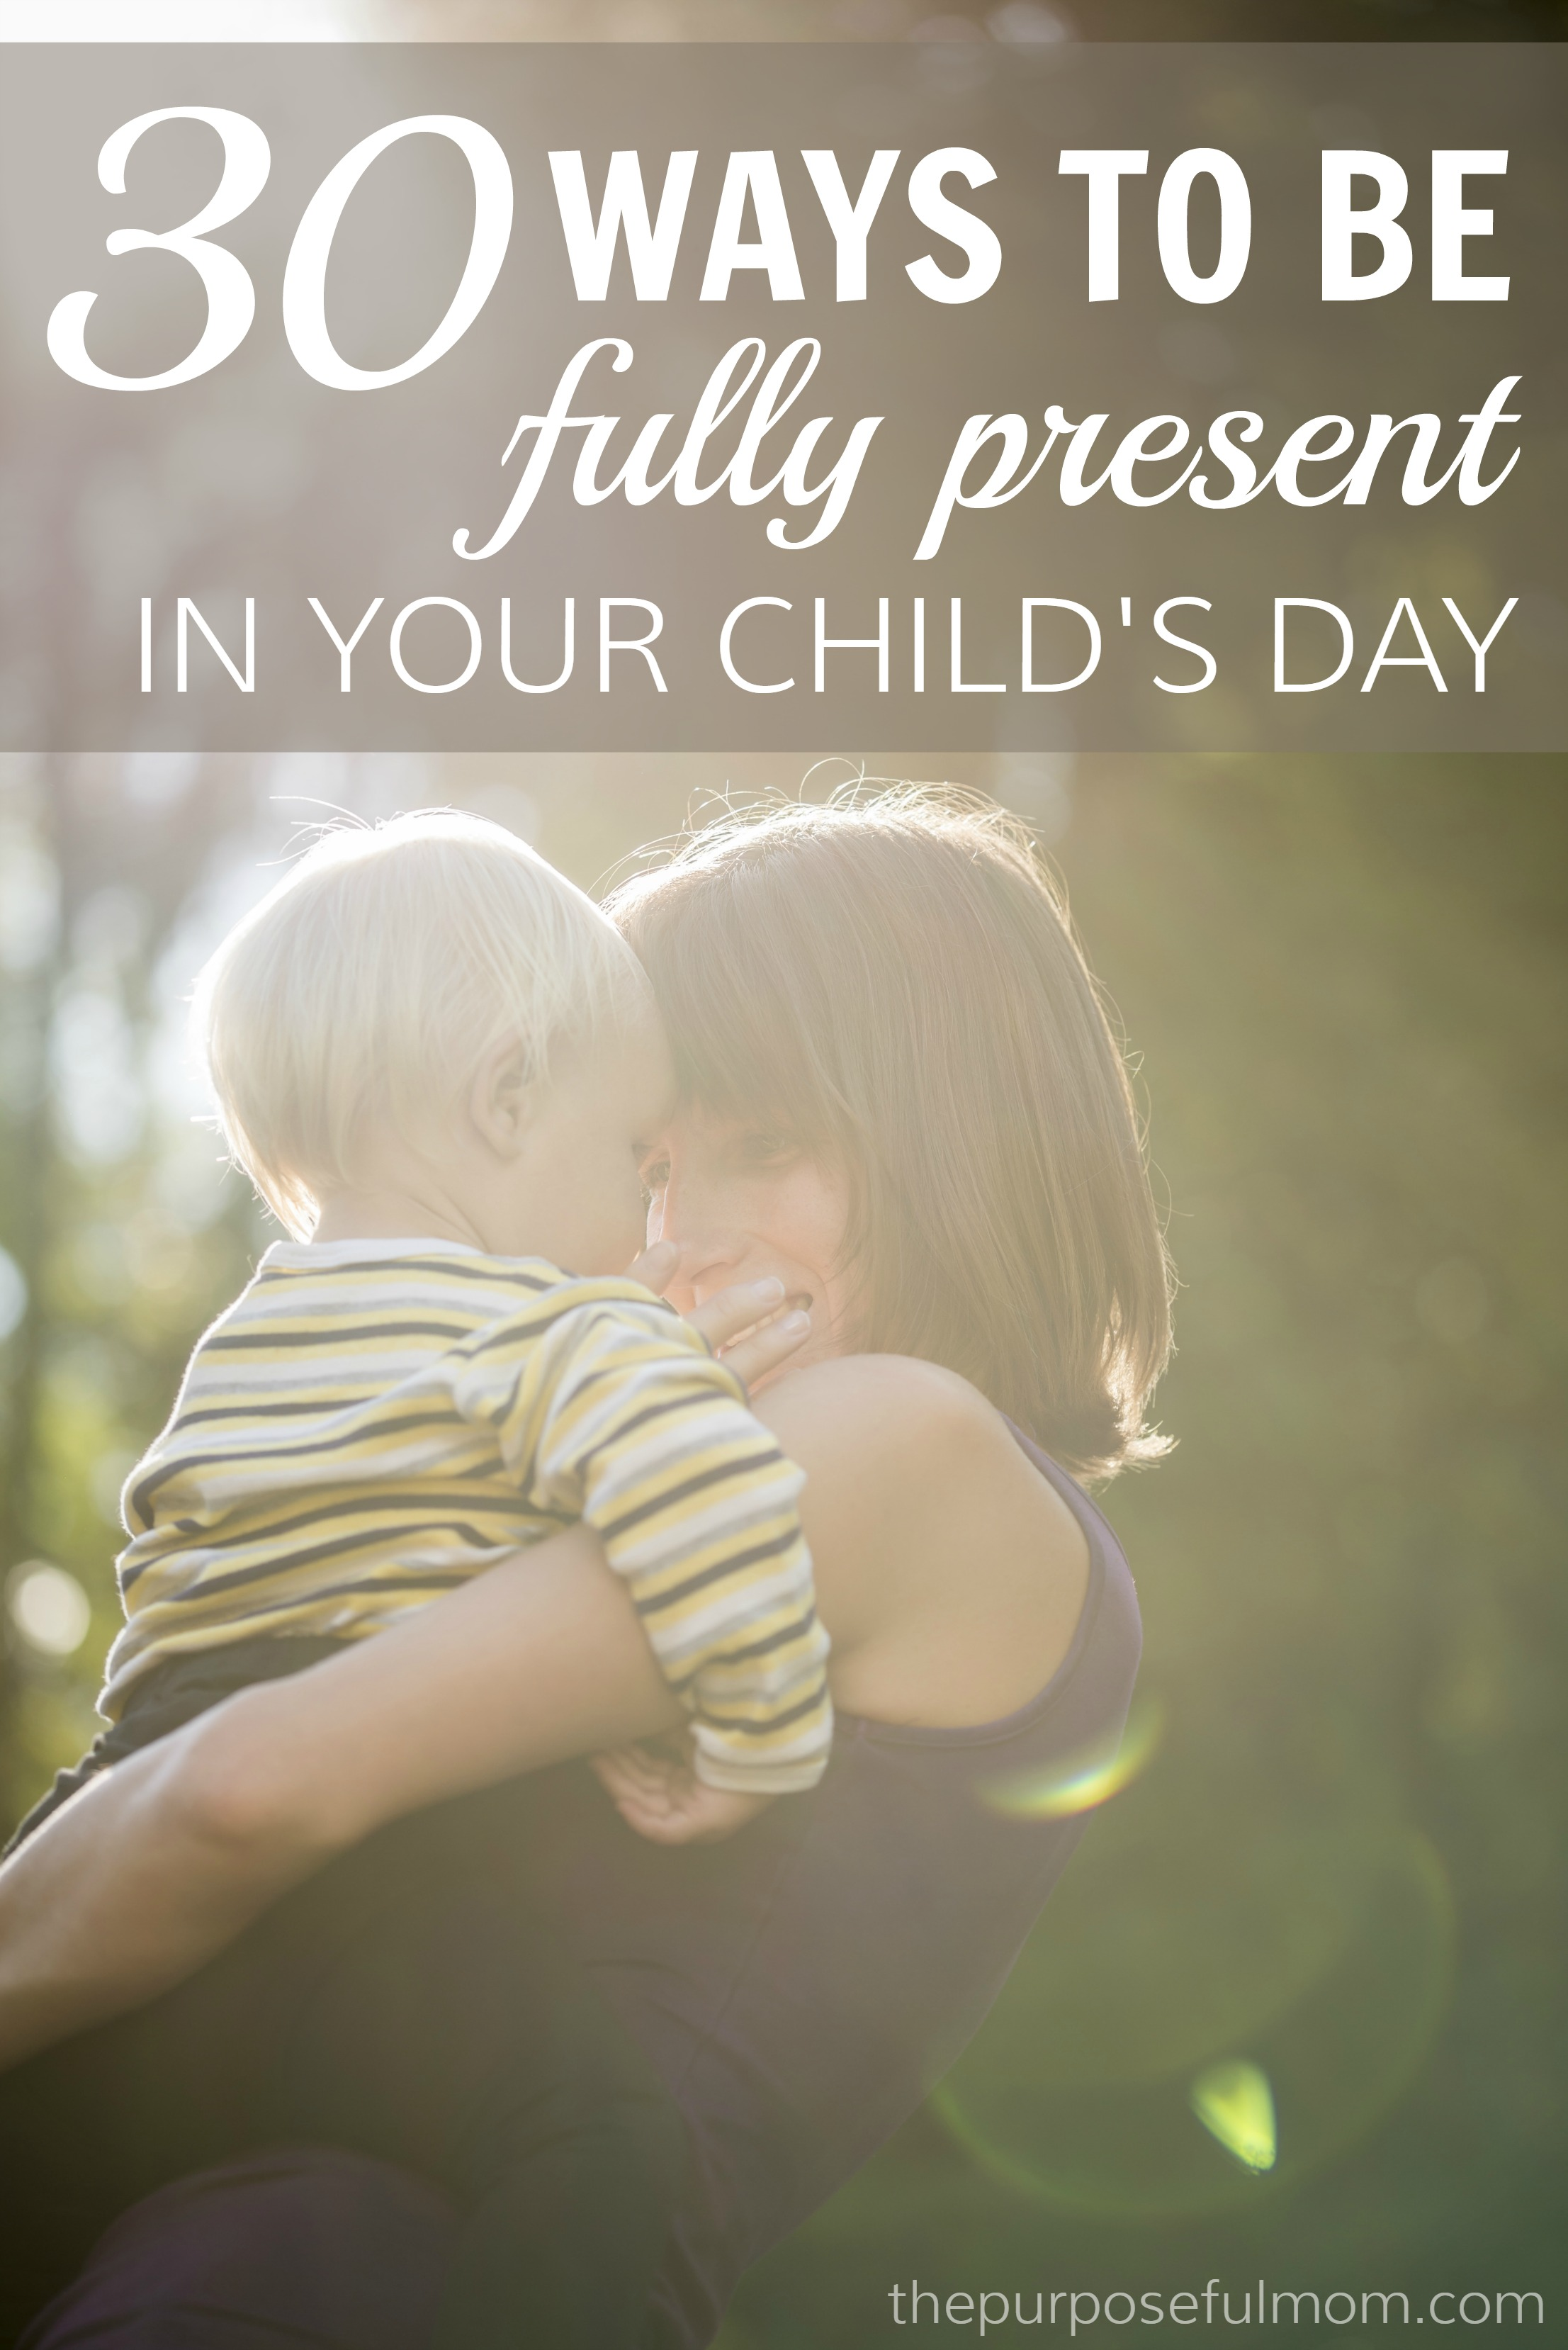 These 30 Ways To Be Fully Present In Your Child's Day Can Help You As A